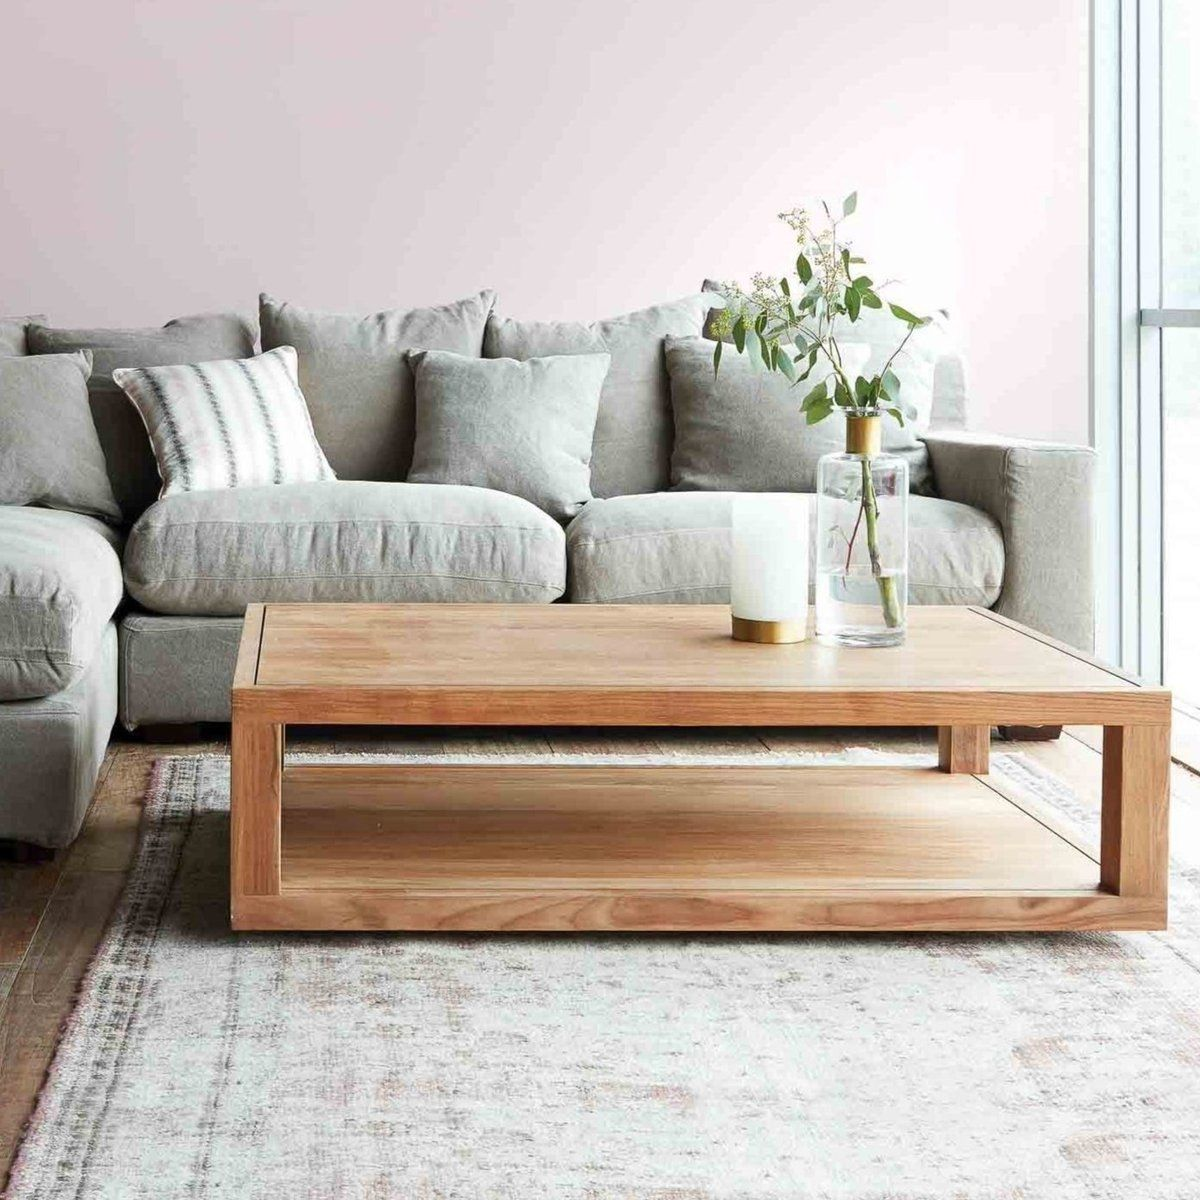 Ethnicraft Teak Coffee Table Duplex Rectangle Originals Furniture Coffee Table Rectangle Coffee Table Center Table Living Room [ 1200 x 1200 Pixel ]